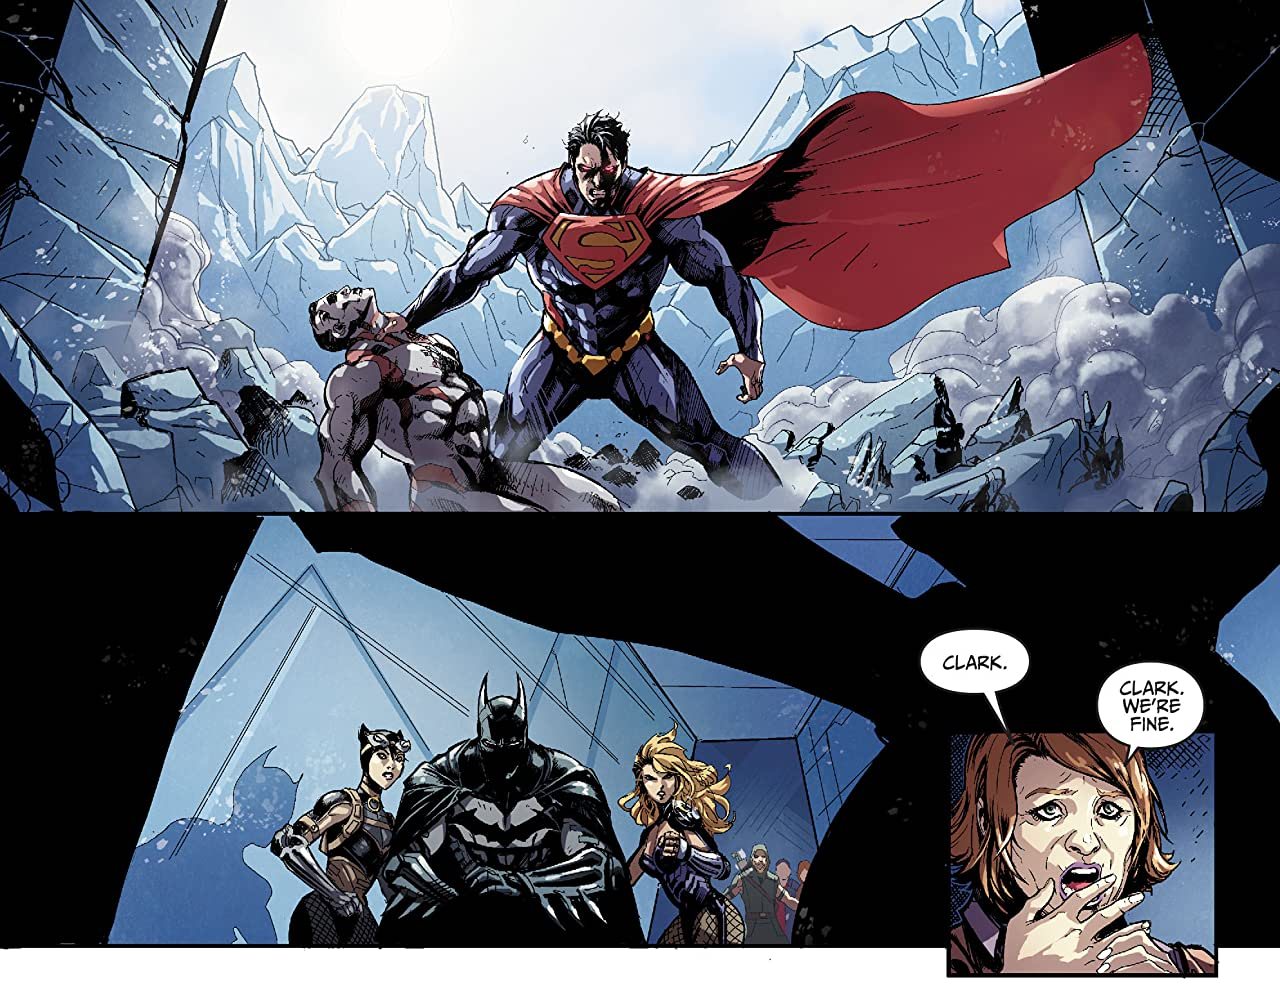 Injustice: Gods Among Us (2013) #32